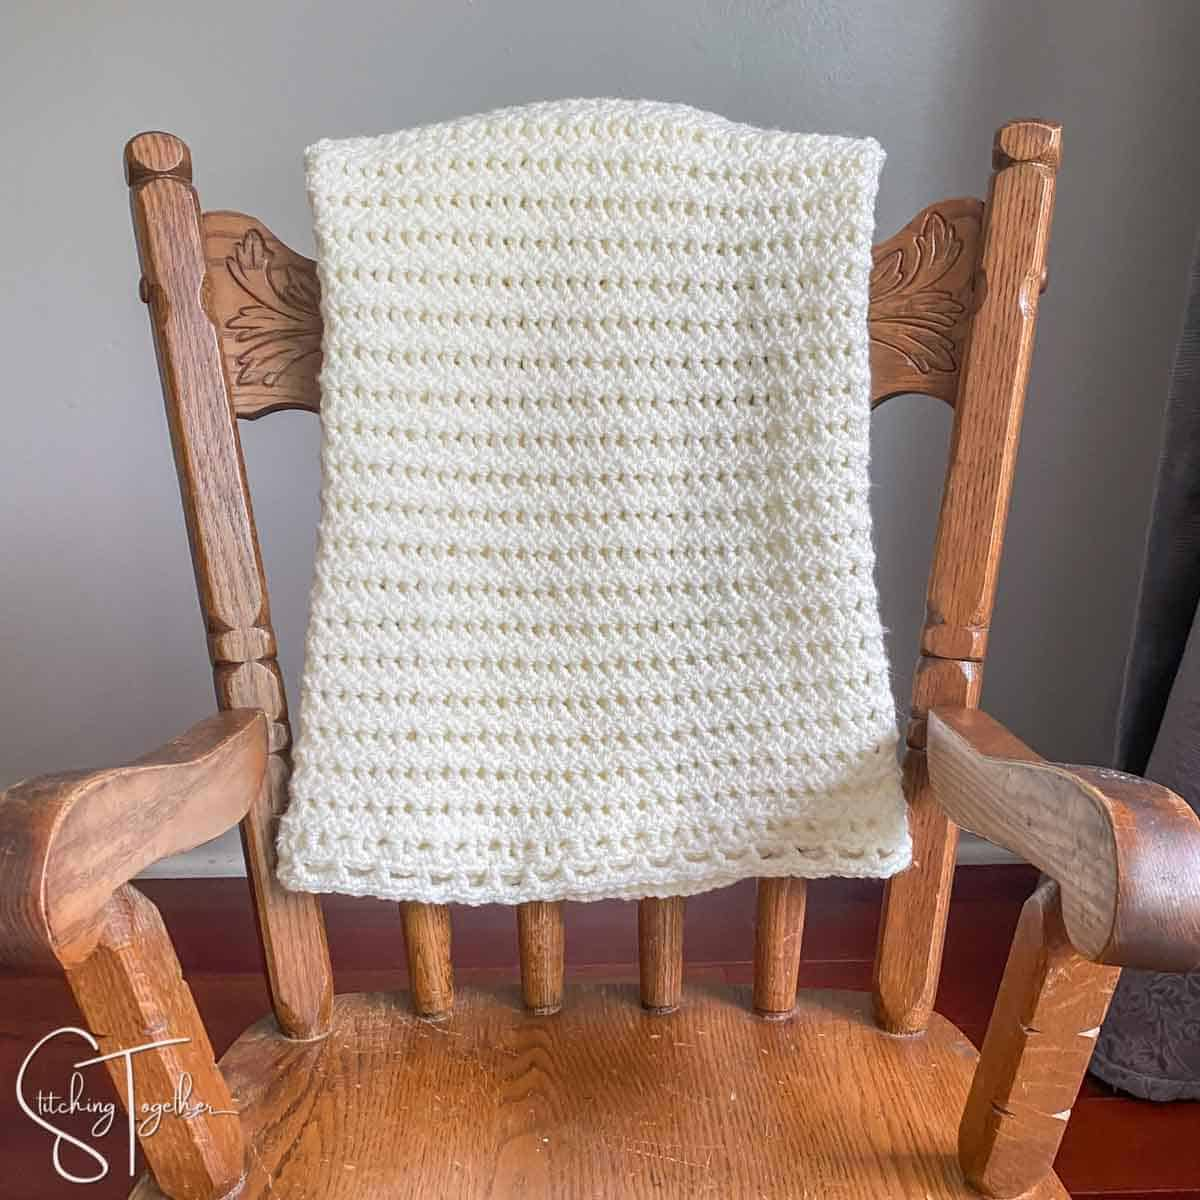 light and lacy crochet baby blanket draped over the back of a small rocking chair